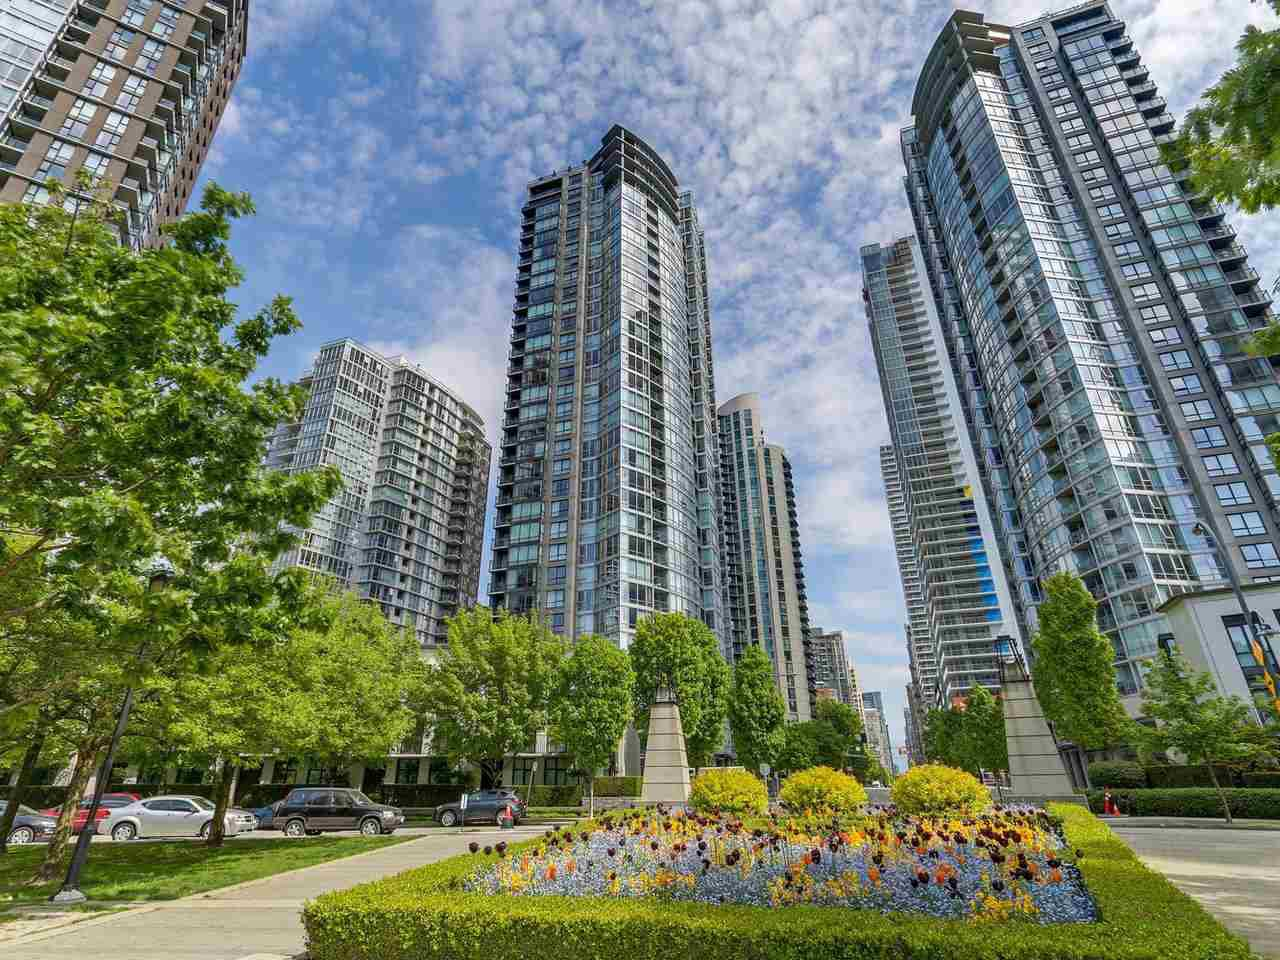 """Main Photo: 502 1495 RICHARDS Street in Vancouver: Yaletown Condo for sale in """"Yaletown"""" (Vancouver West)  : MLS®# R2264375"""